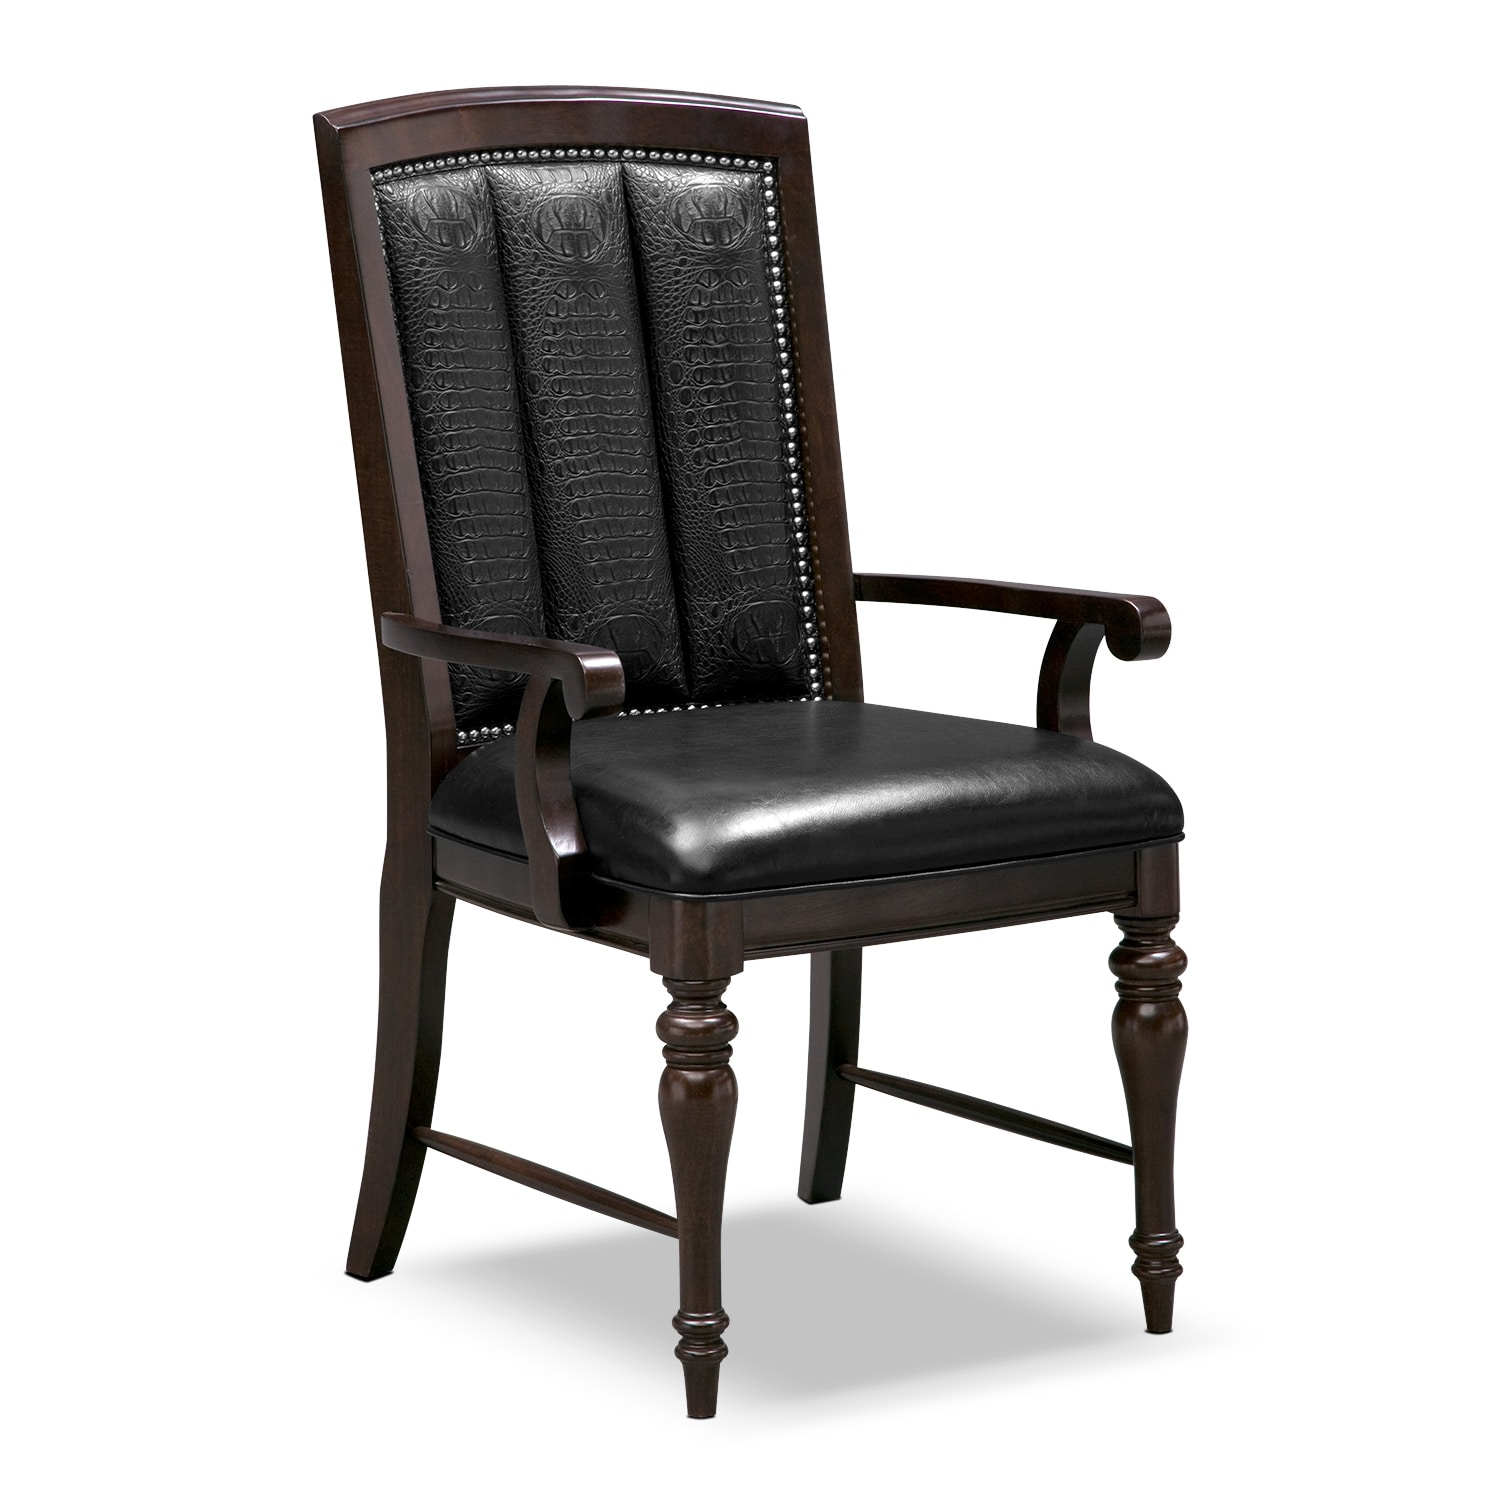 Esquire Dining Room Arm Chair - Value City Furniture